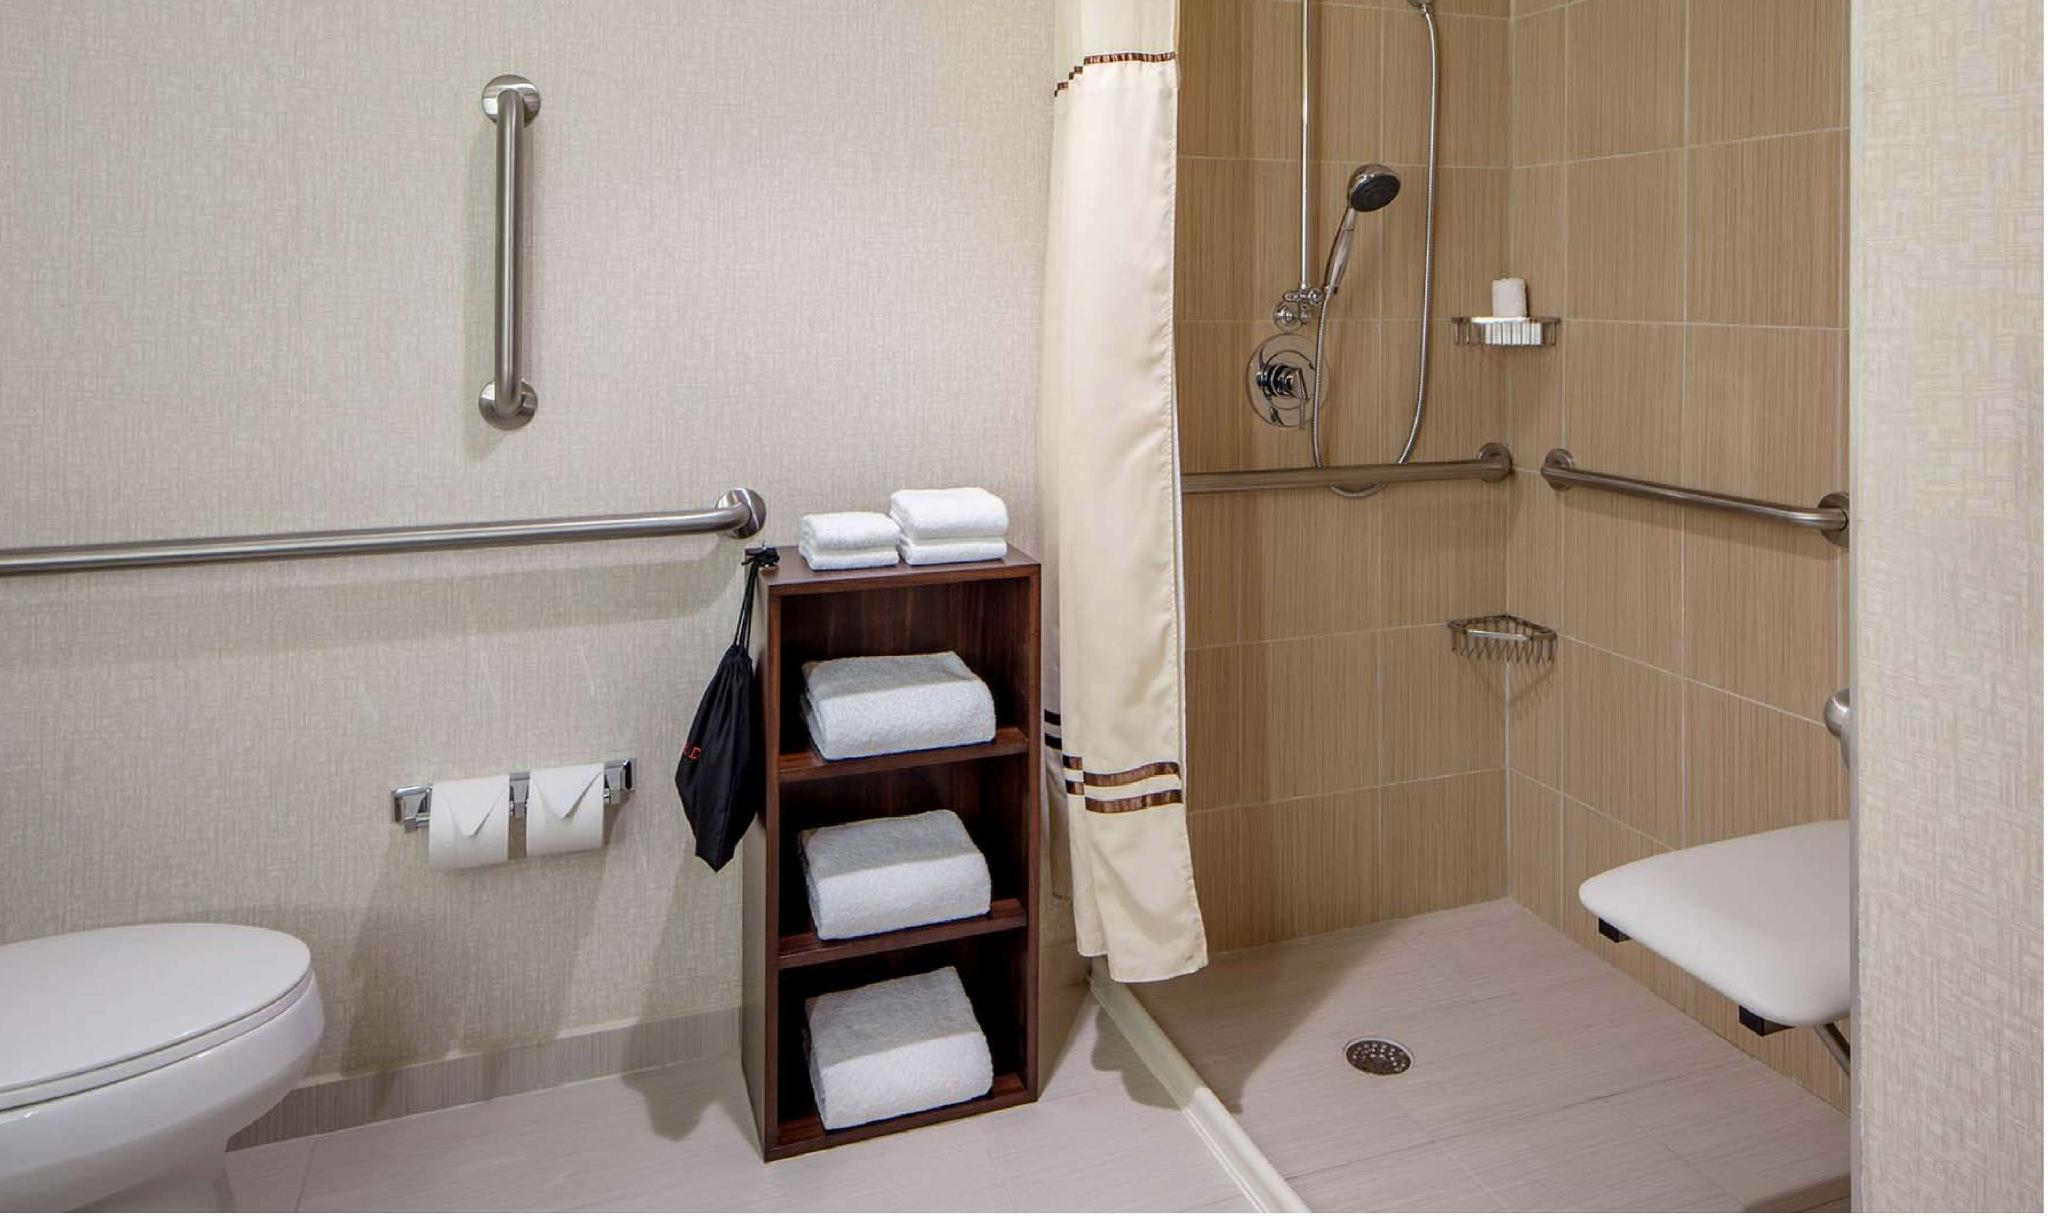 2 Double City View Mobility Hearing Accessible Roll in Shower